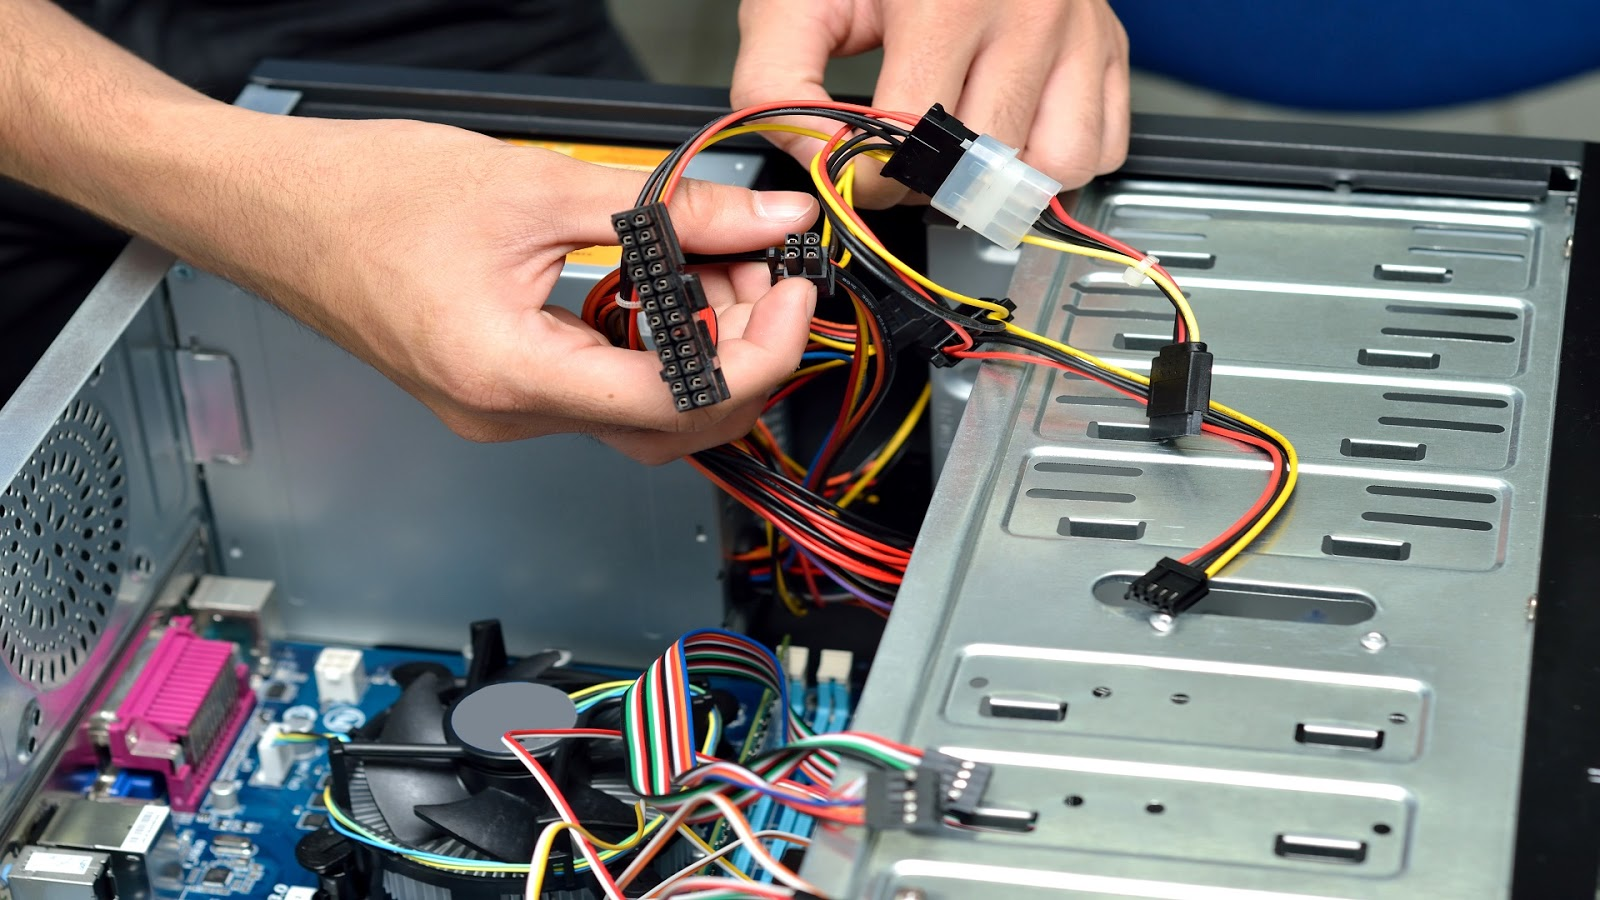 Power Supply Problems - TROUBLESHOOTING